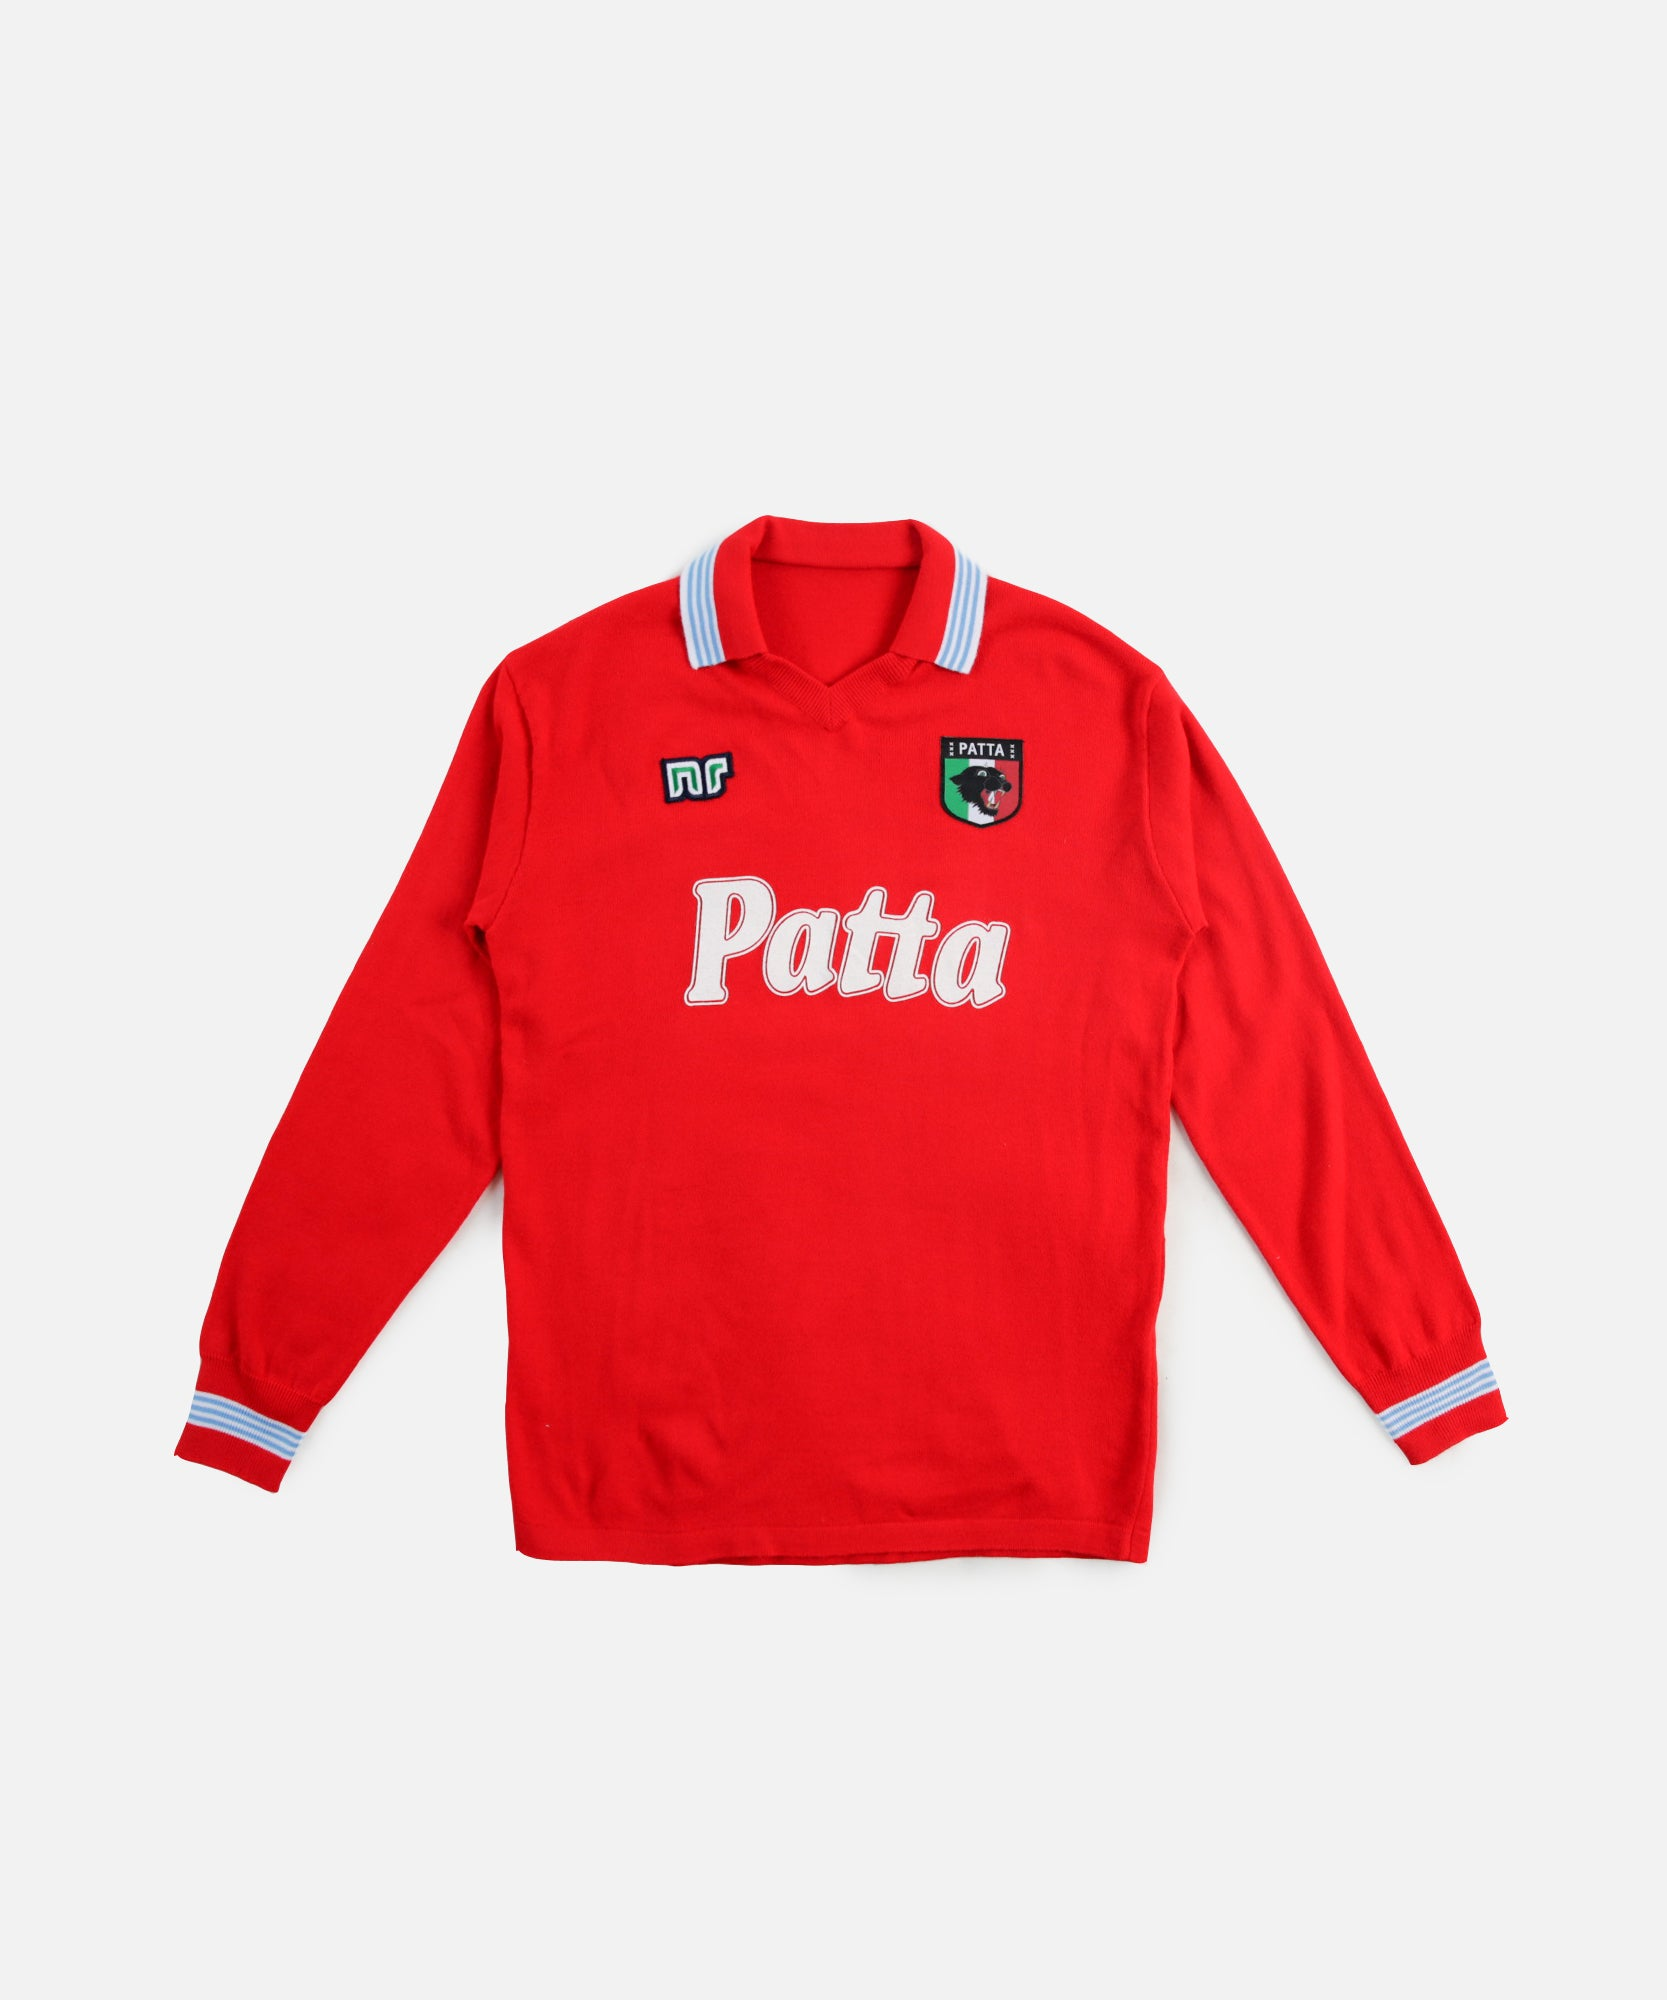 NR x Patta No. 10 Long Sleeve Football Jersey (Napoli Red)